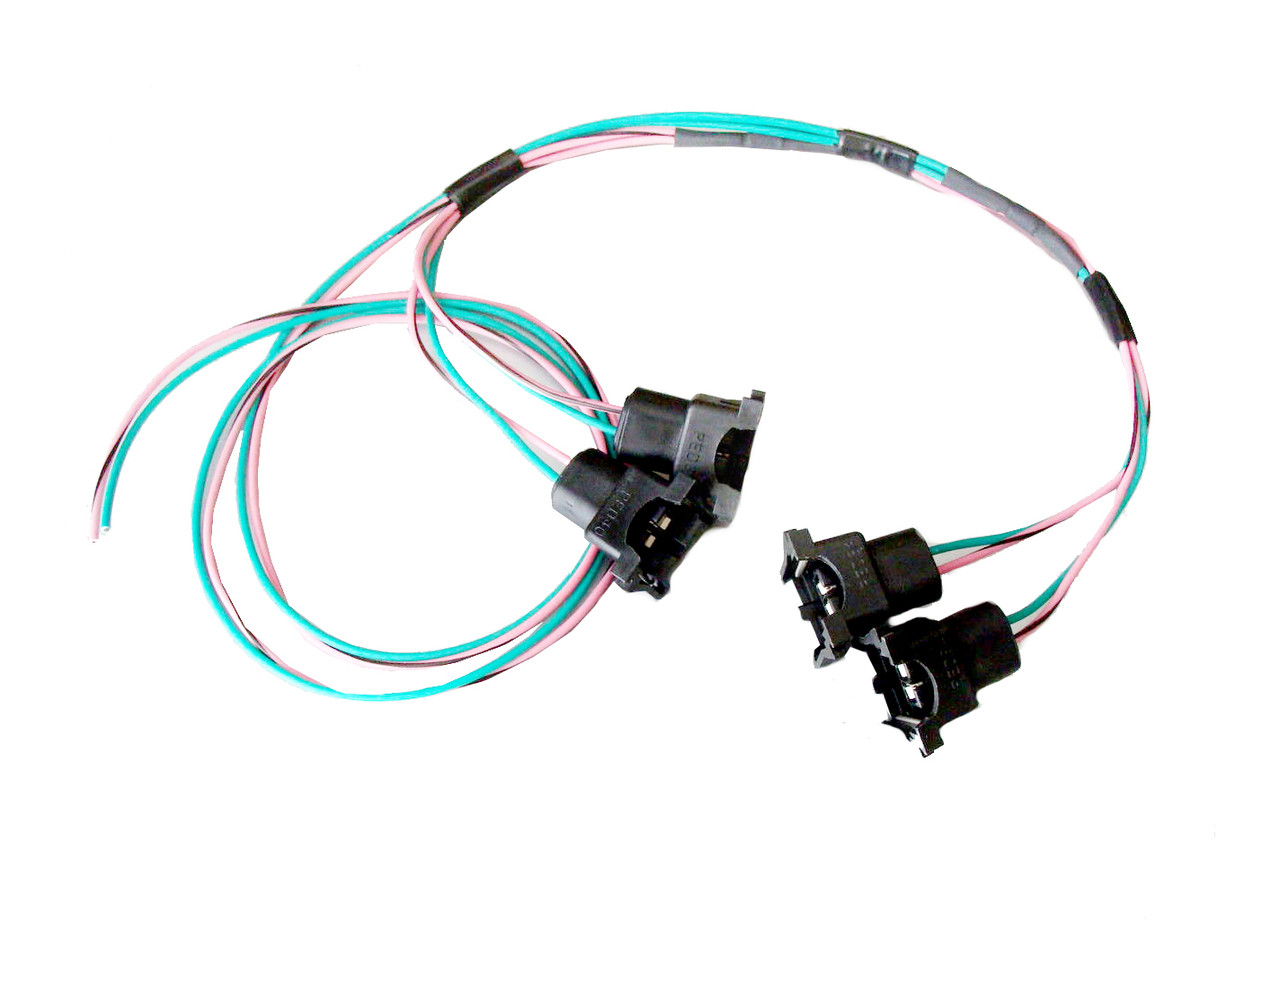 Fast Tpi Wiring Harness Electrical Diagrams Chevy Schematic Chevrolet Injector Diagram Trusted 85 Camaro Essential